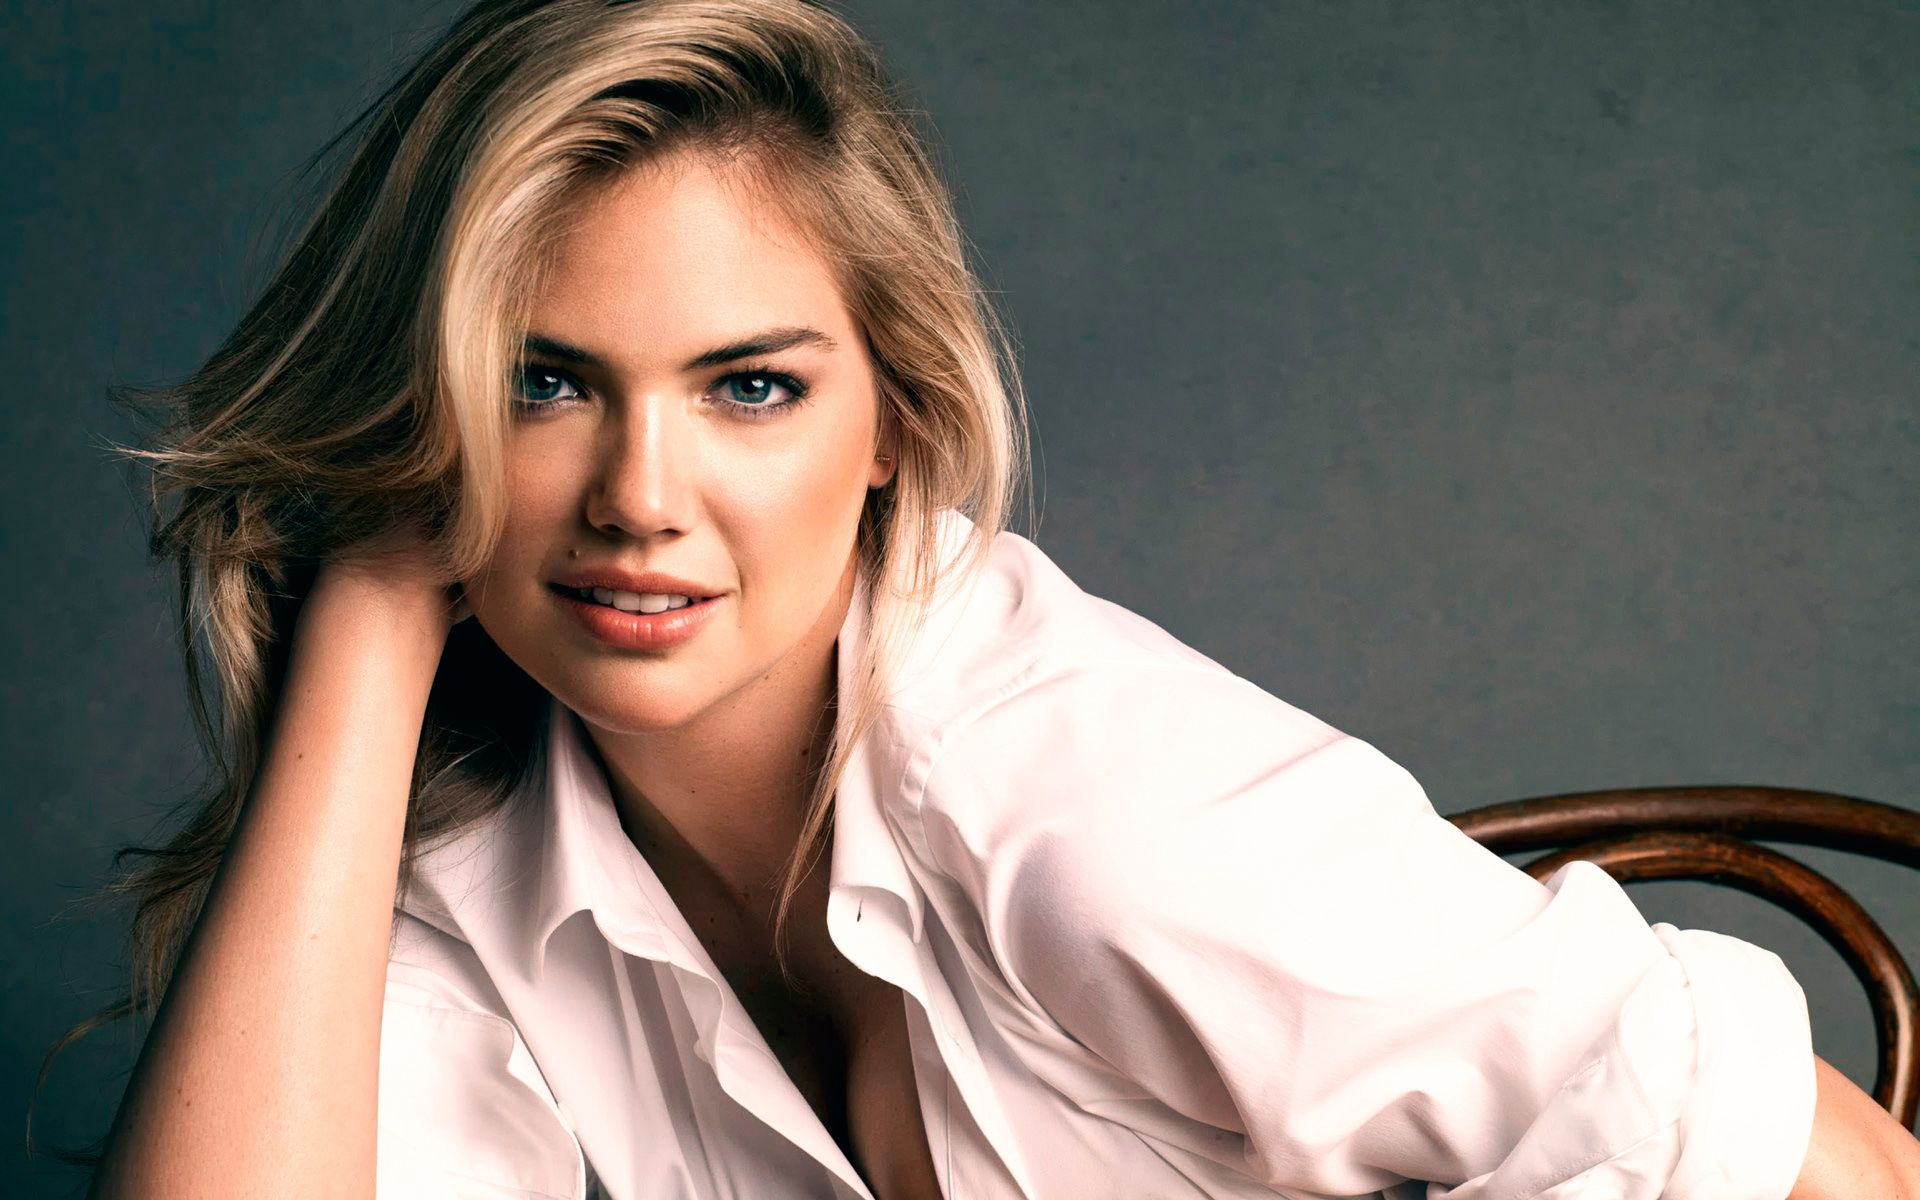 Kate Upton Latest HD Wallpaper New HD Wallpapers Download